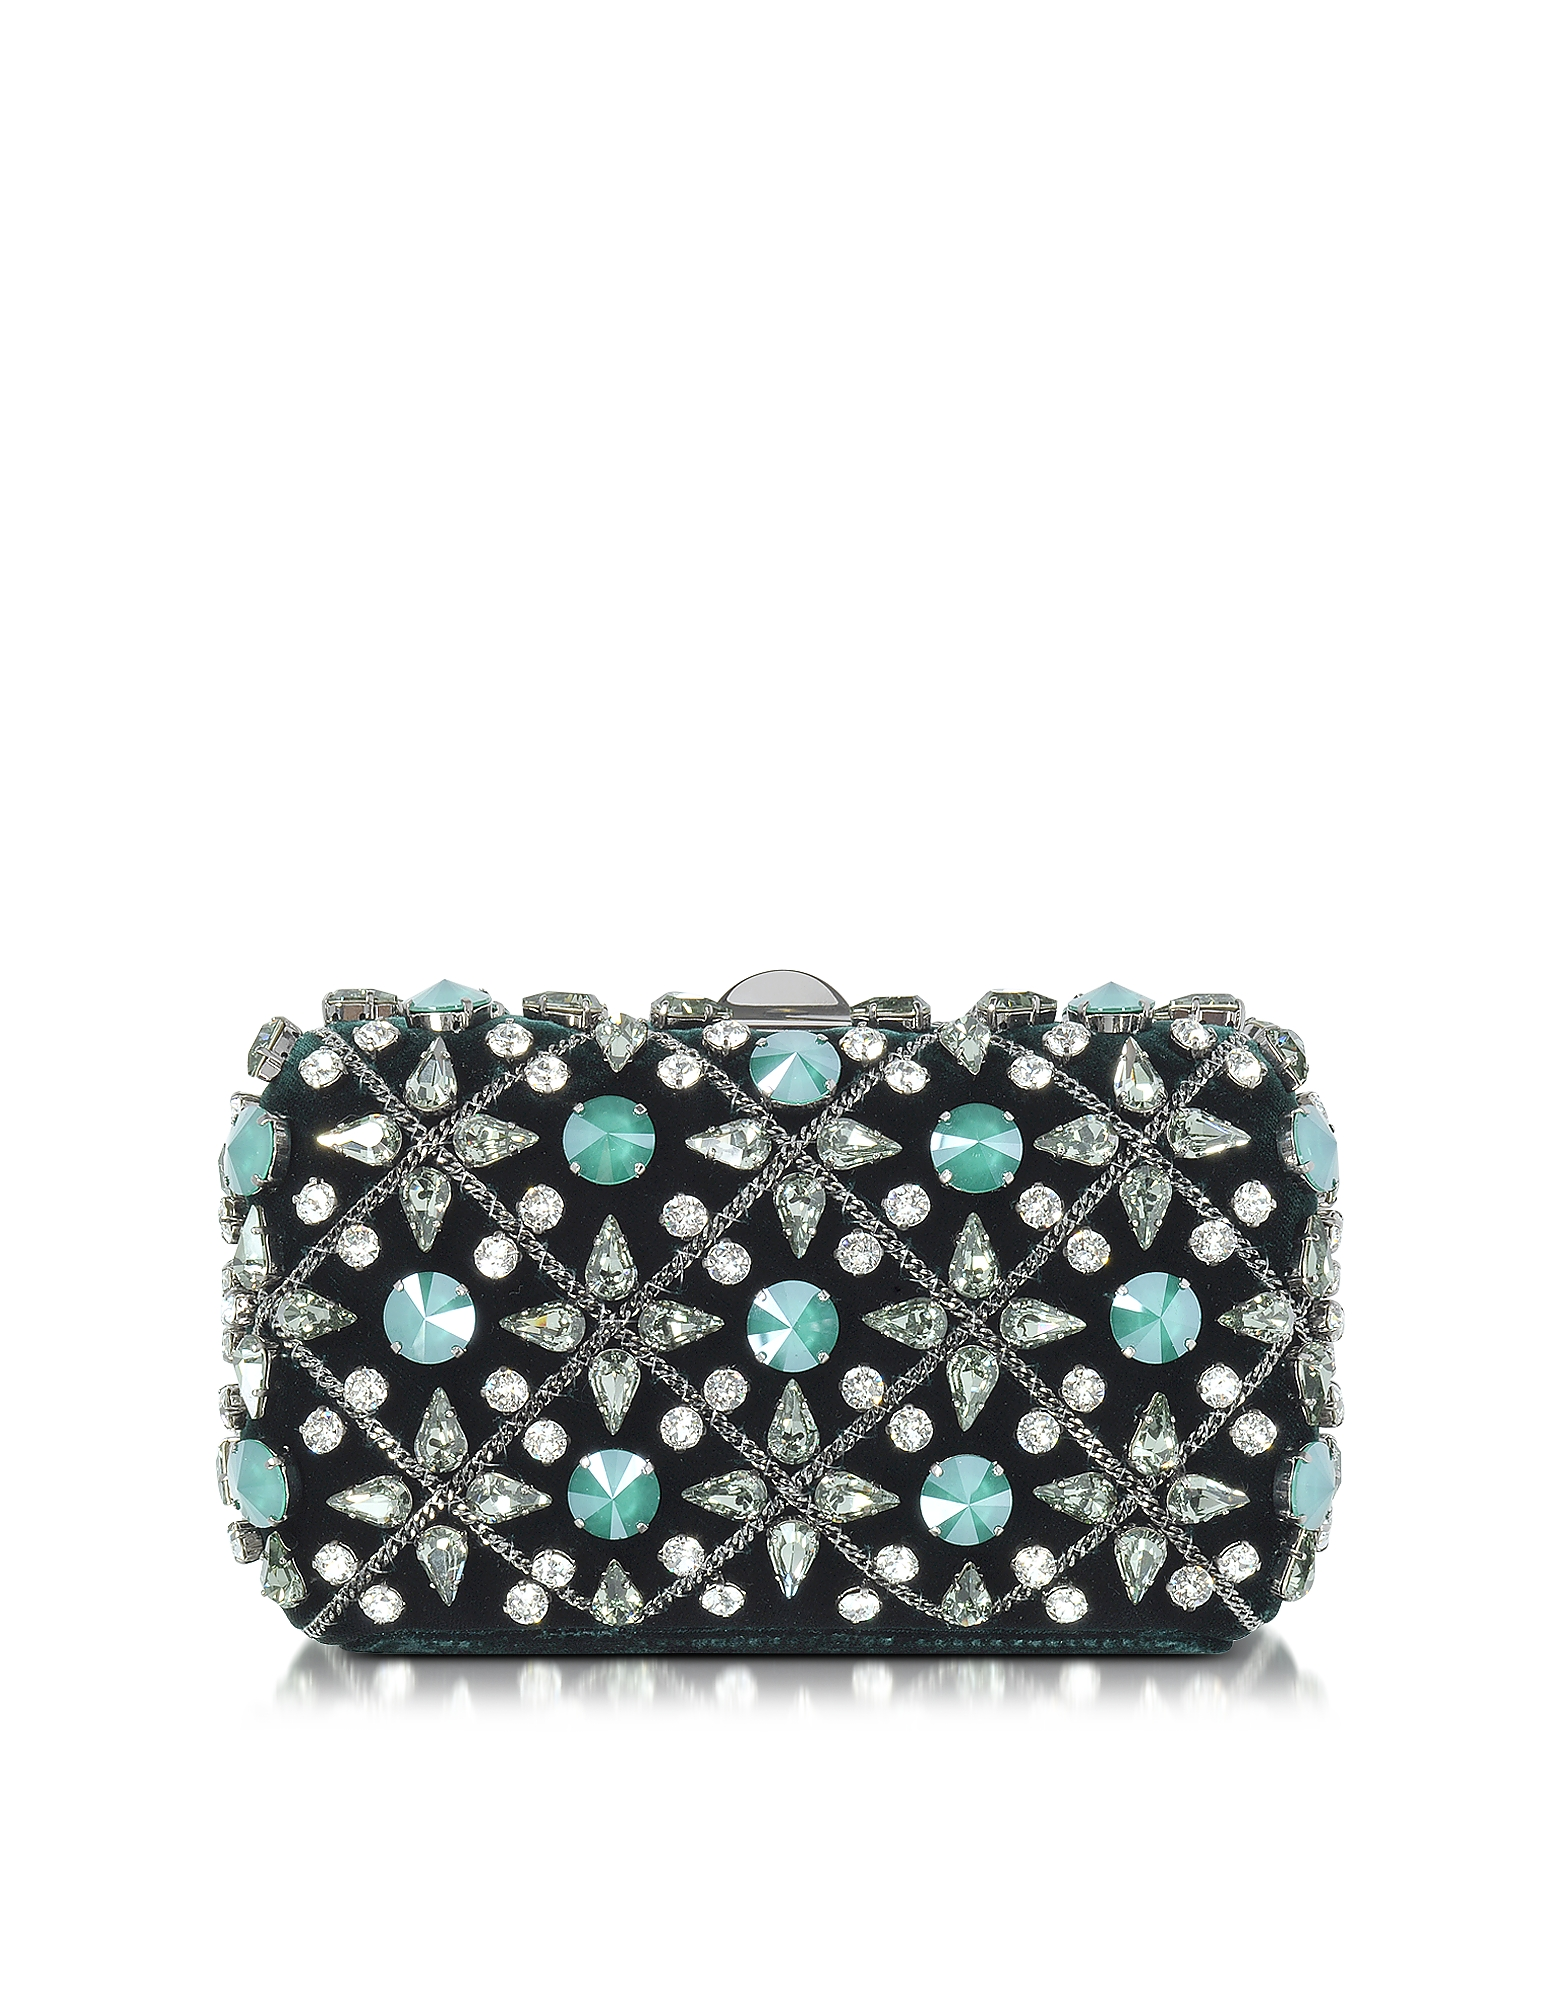 Rodo Handbags, Emerald Green Velvet Tresor Clutch w/Crystals